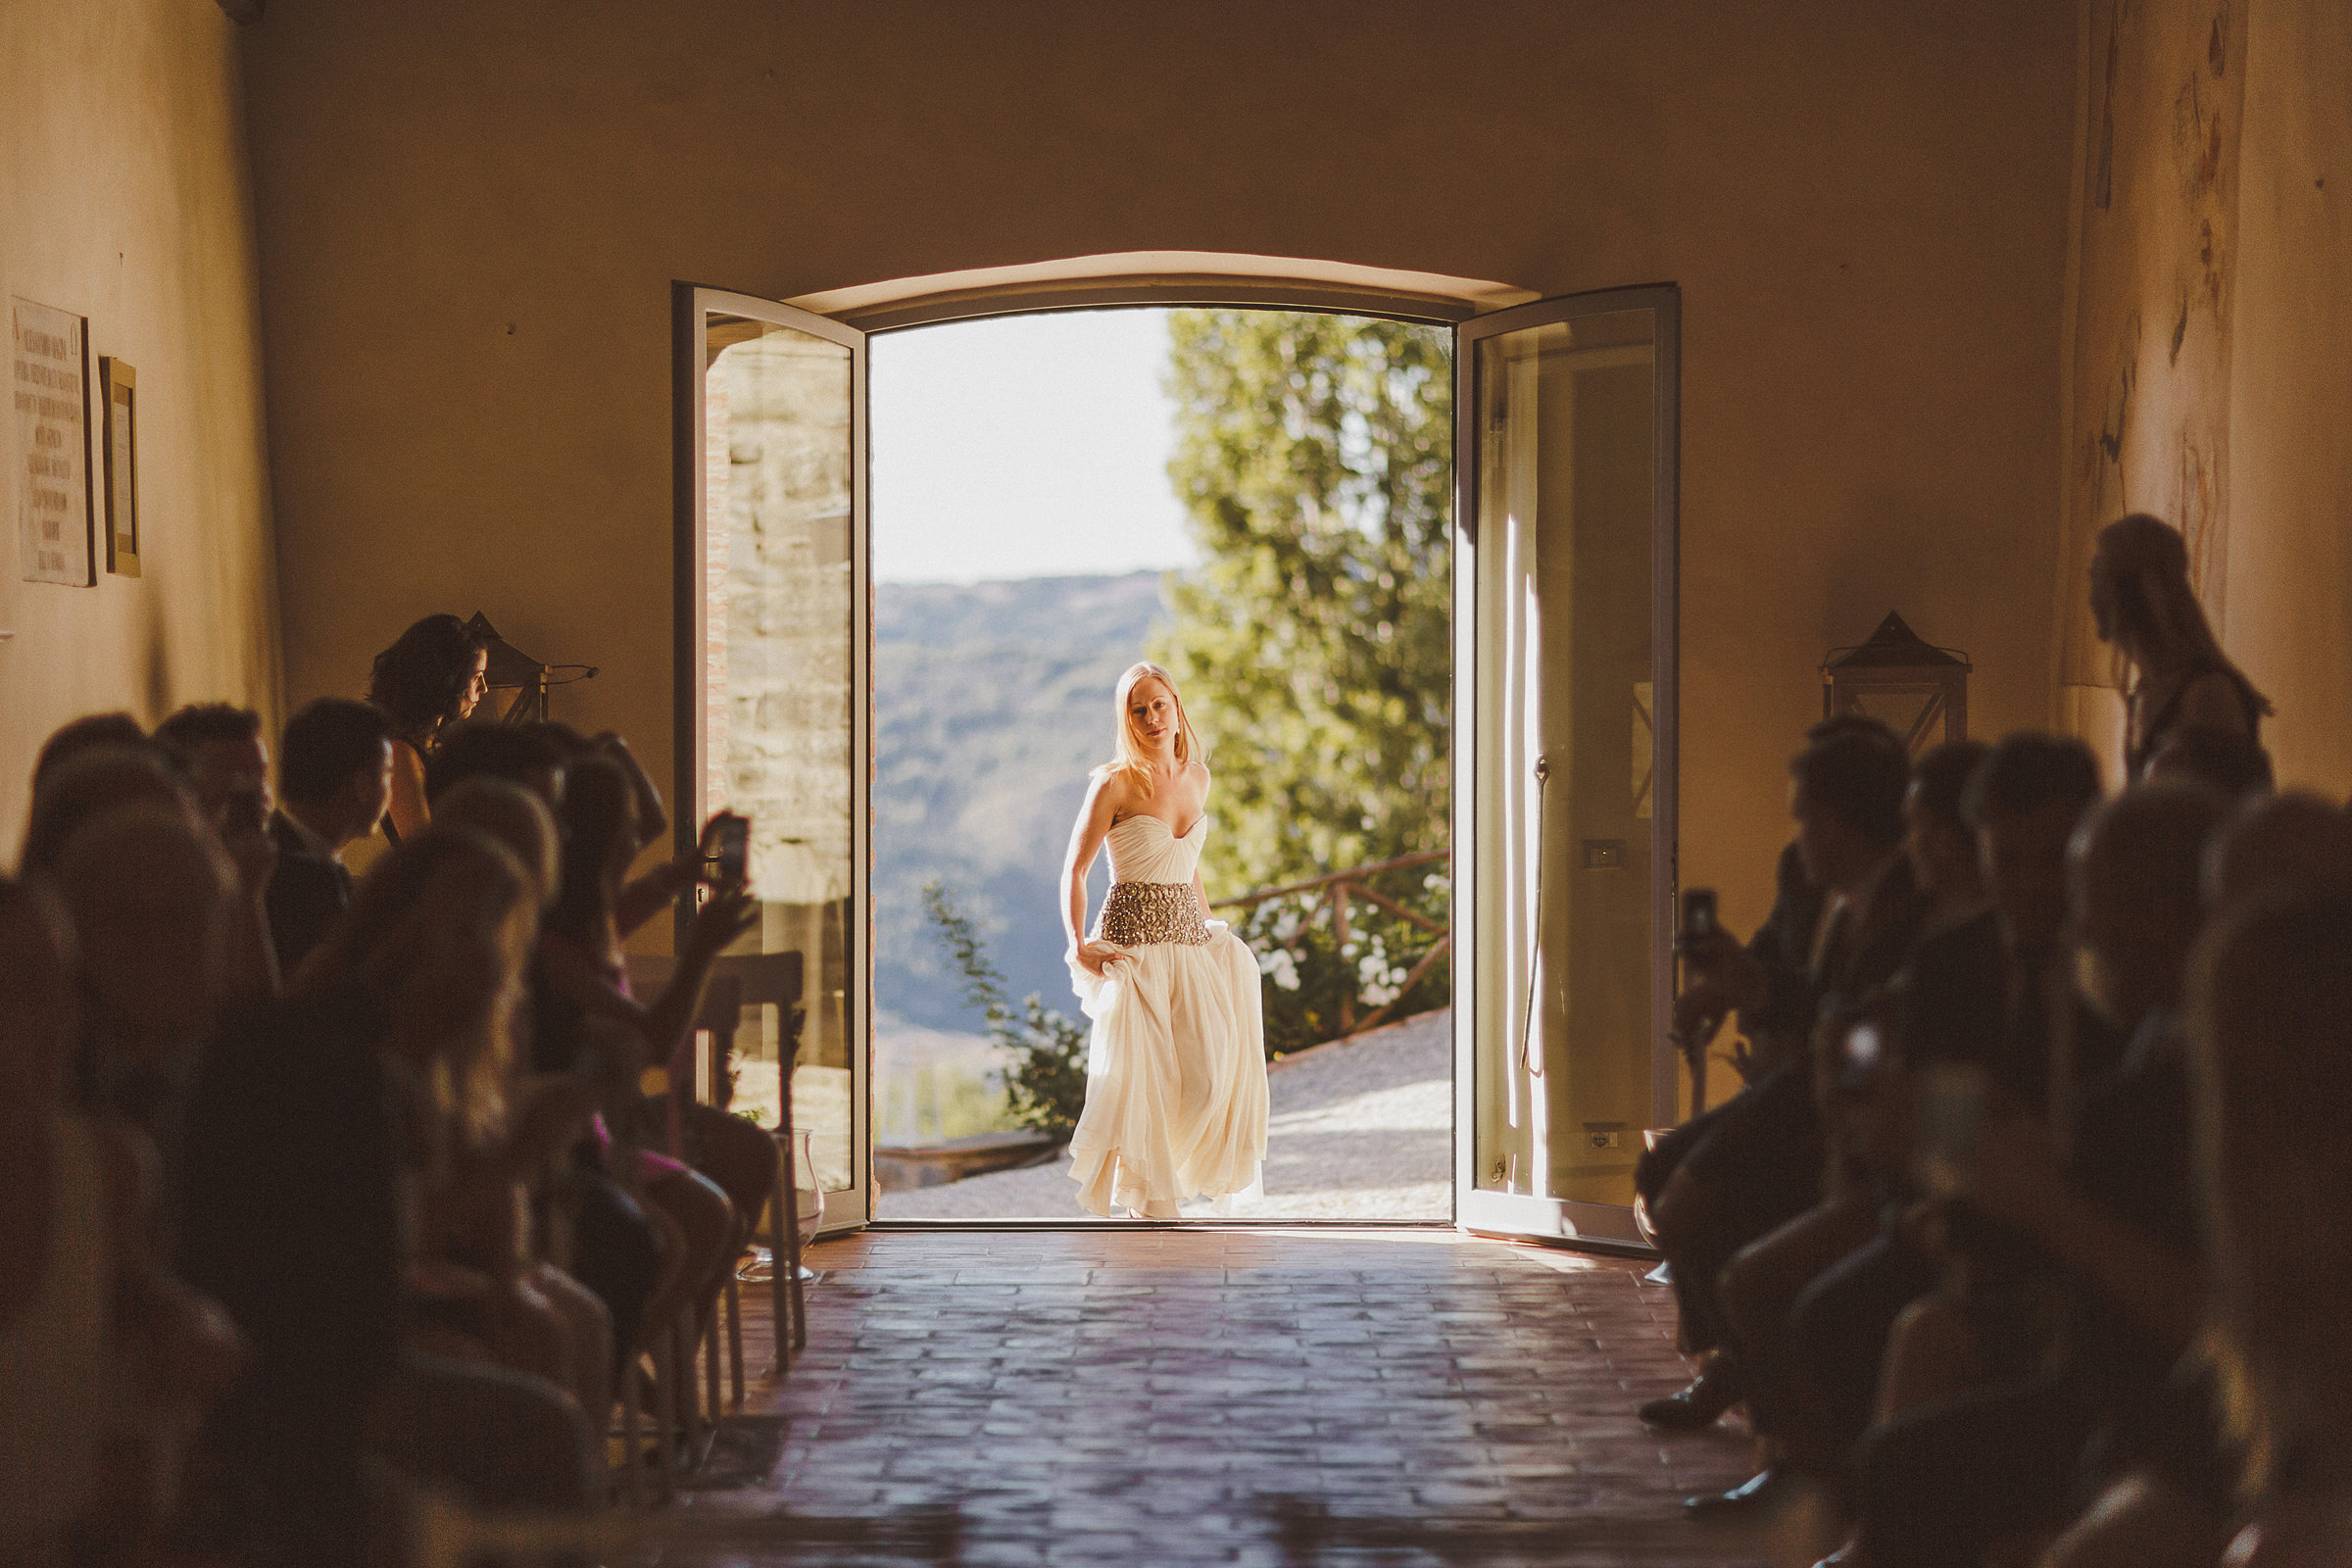 Bride entering ceremony hall - photo by Ed Peers Photography